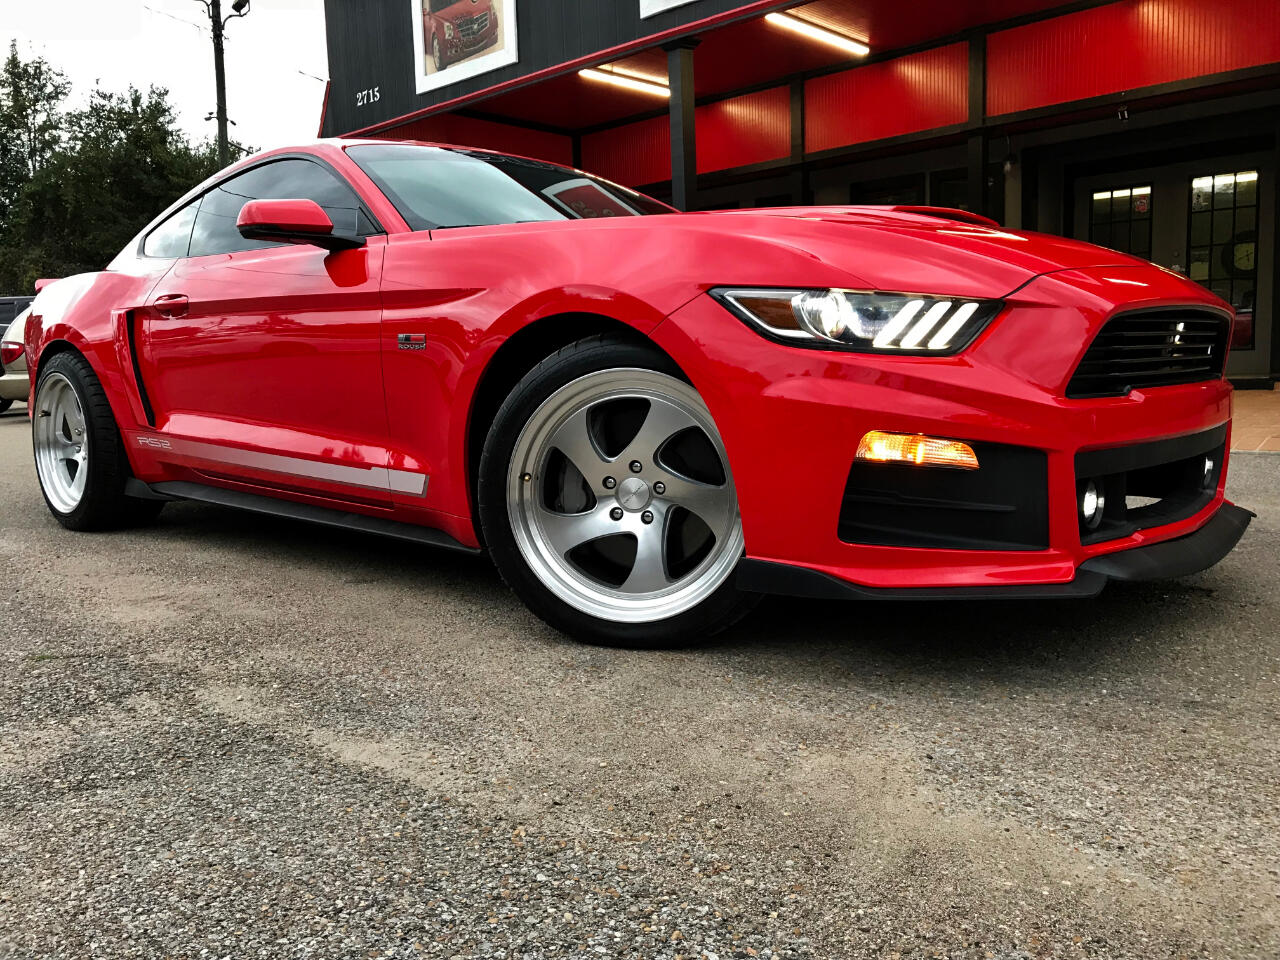 2016 Ford Mustang ROUSH STAGE 2